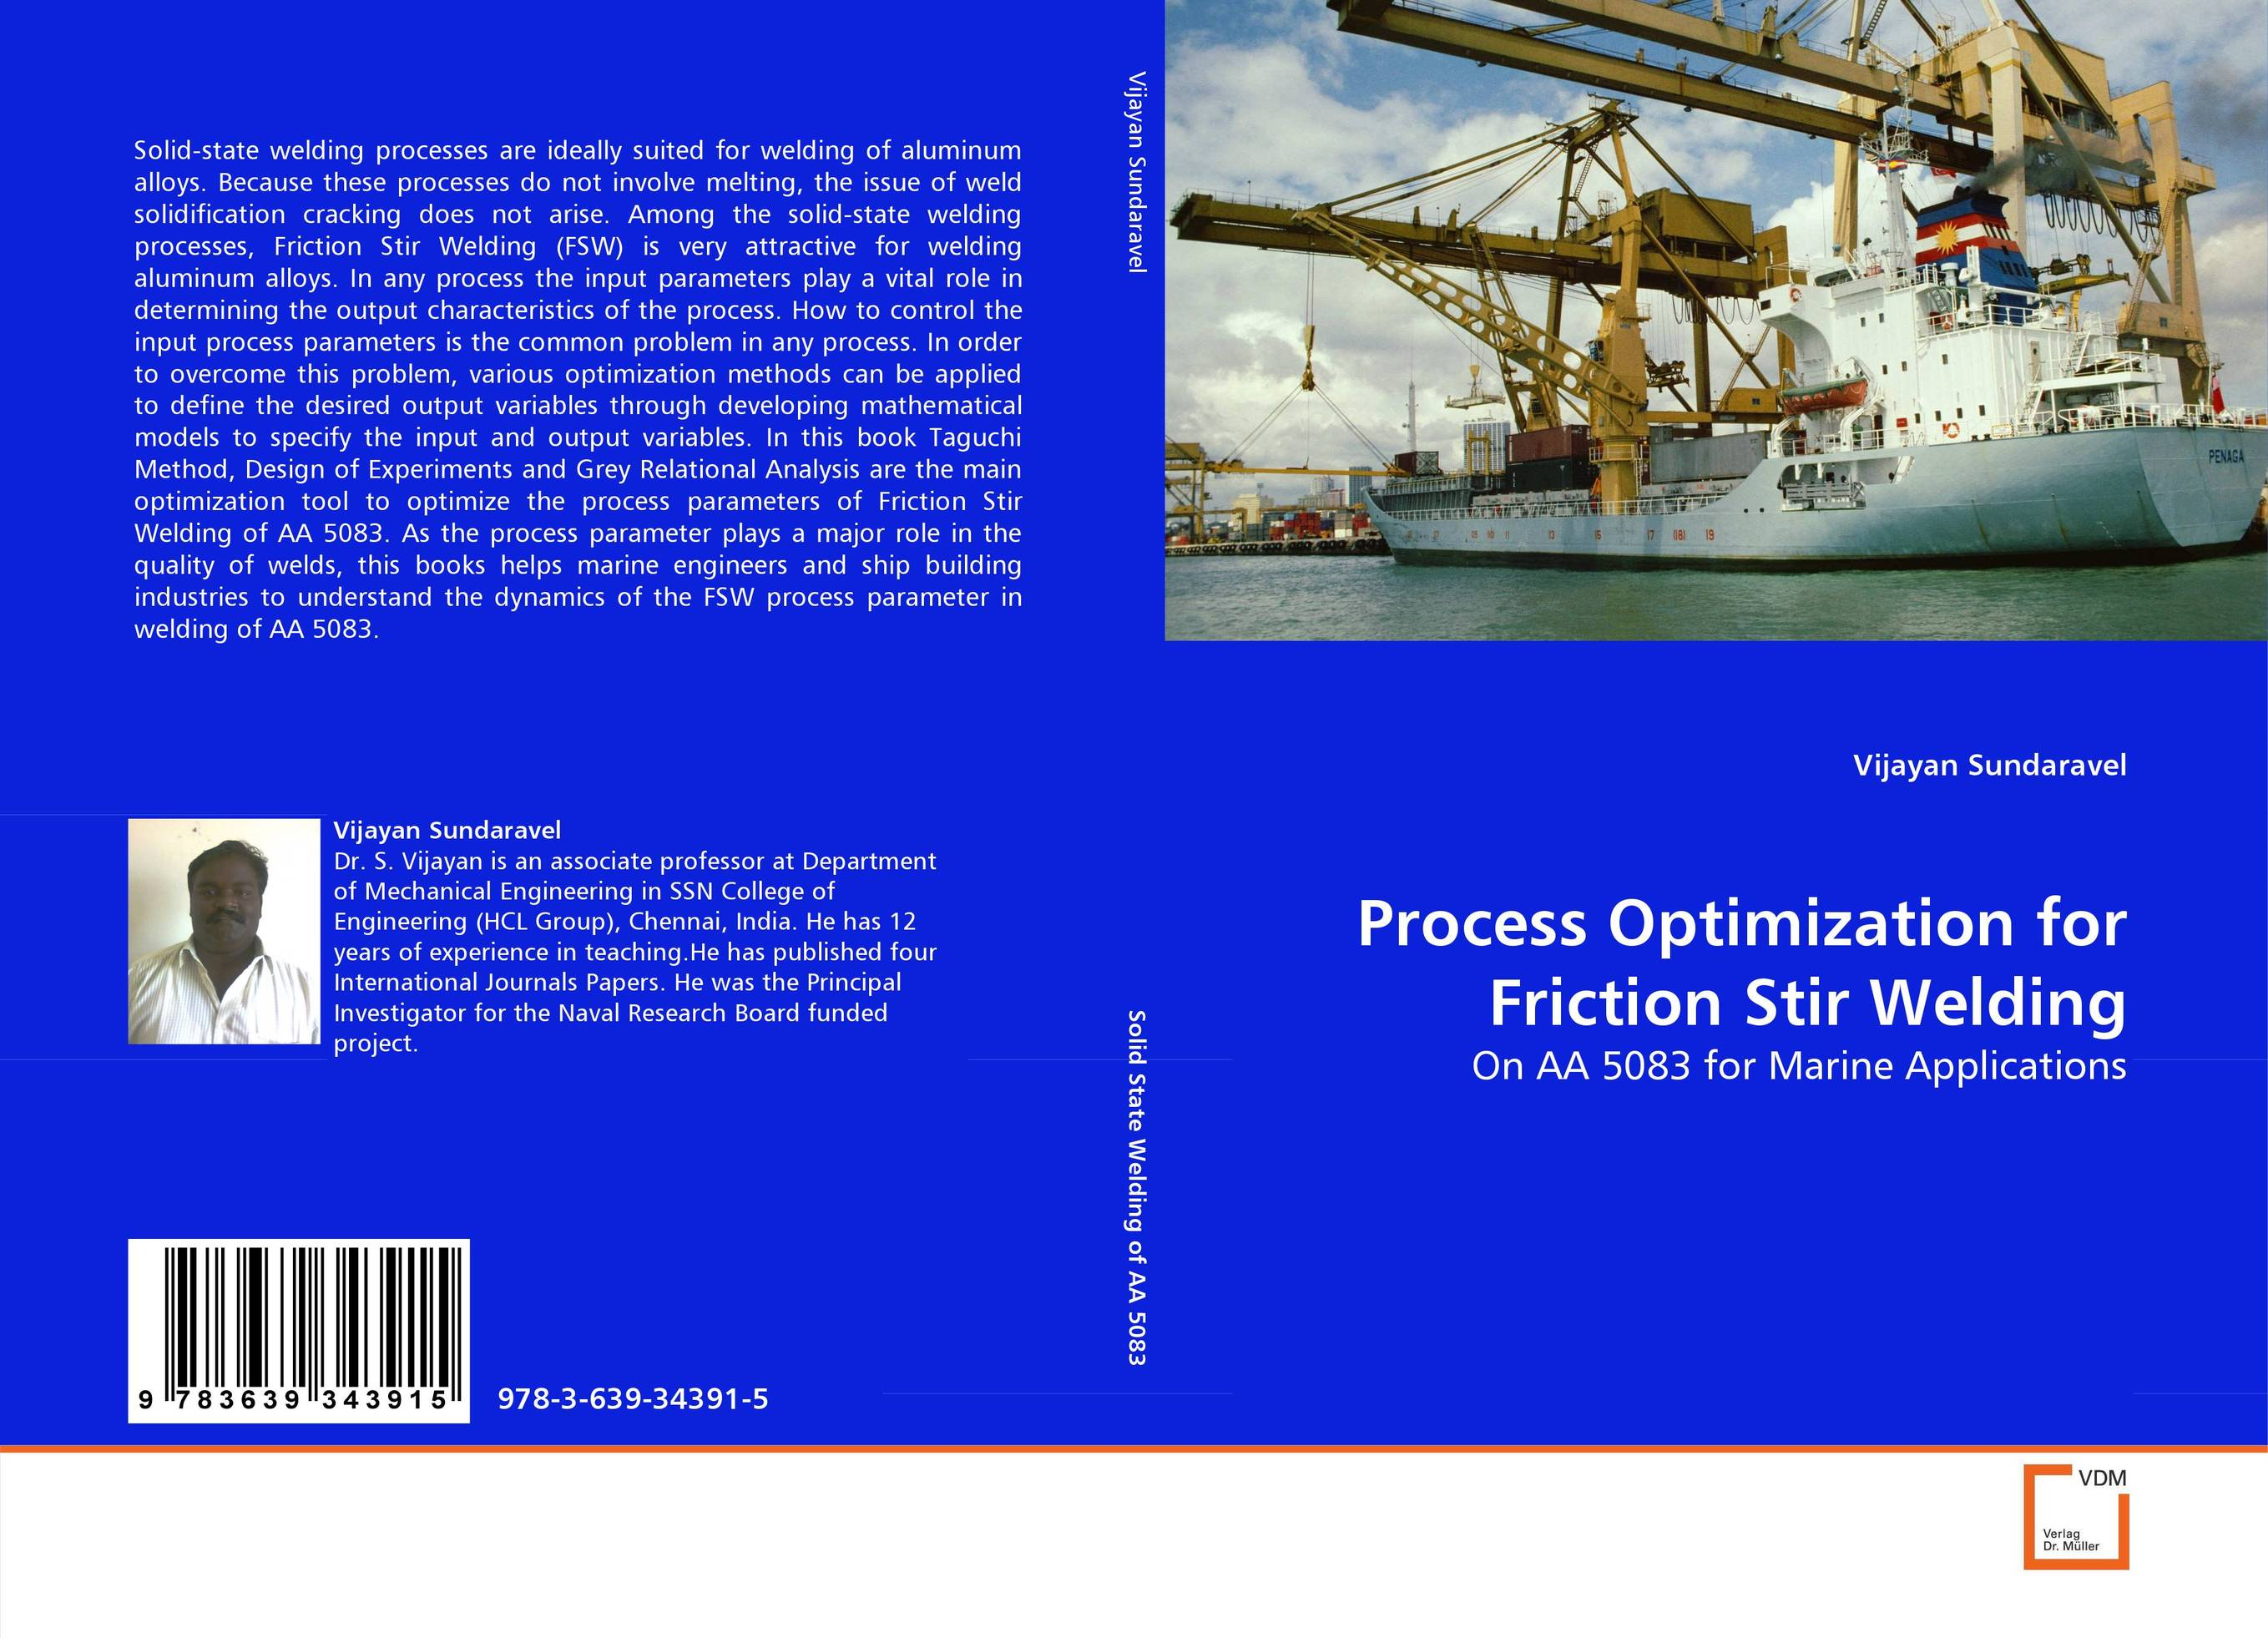 Process Optimization for Friction Stir Welding optimization of design parameters for the rigid drive disc of clutch